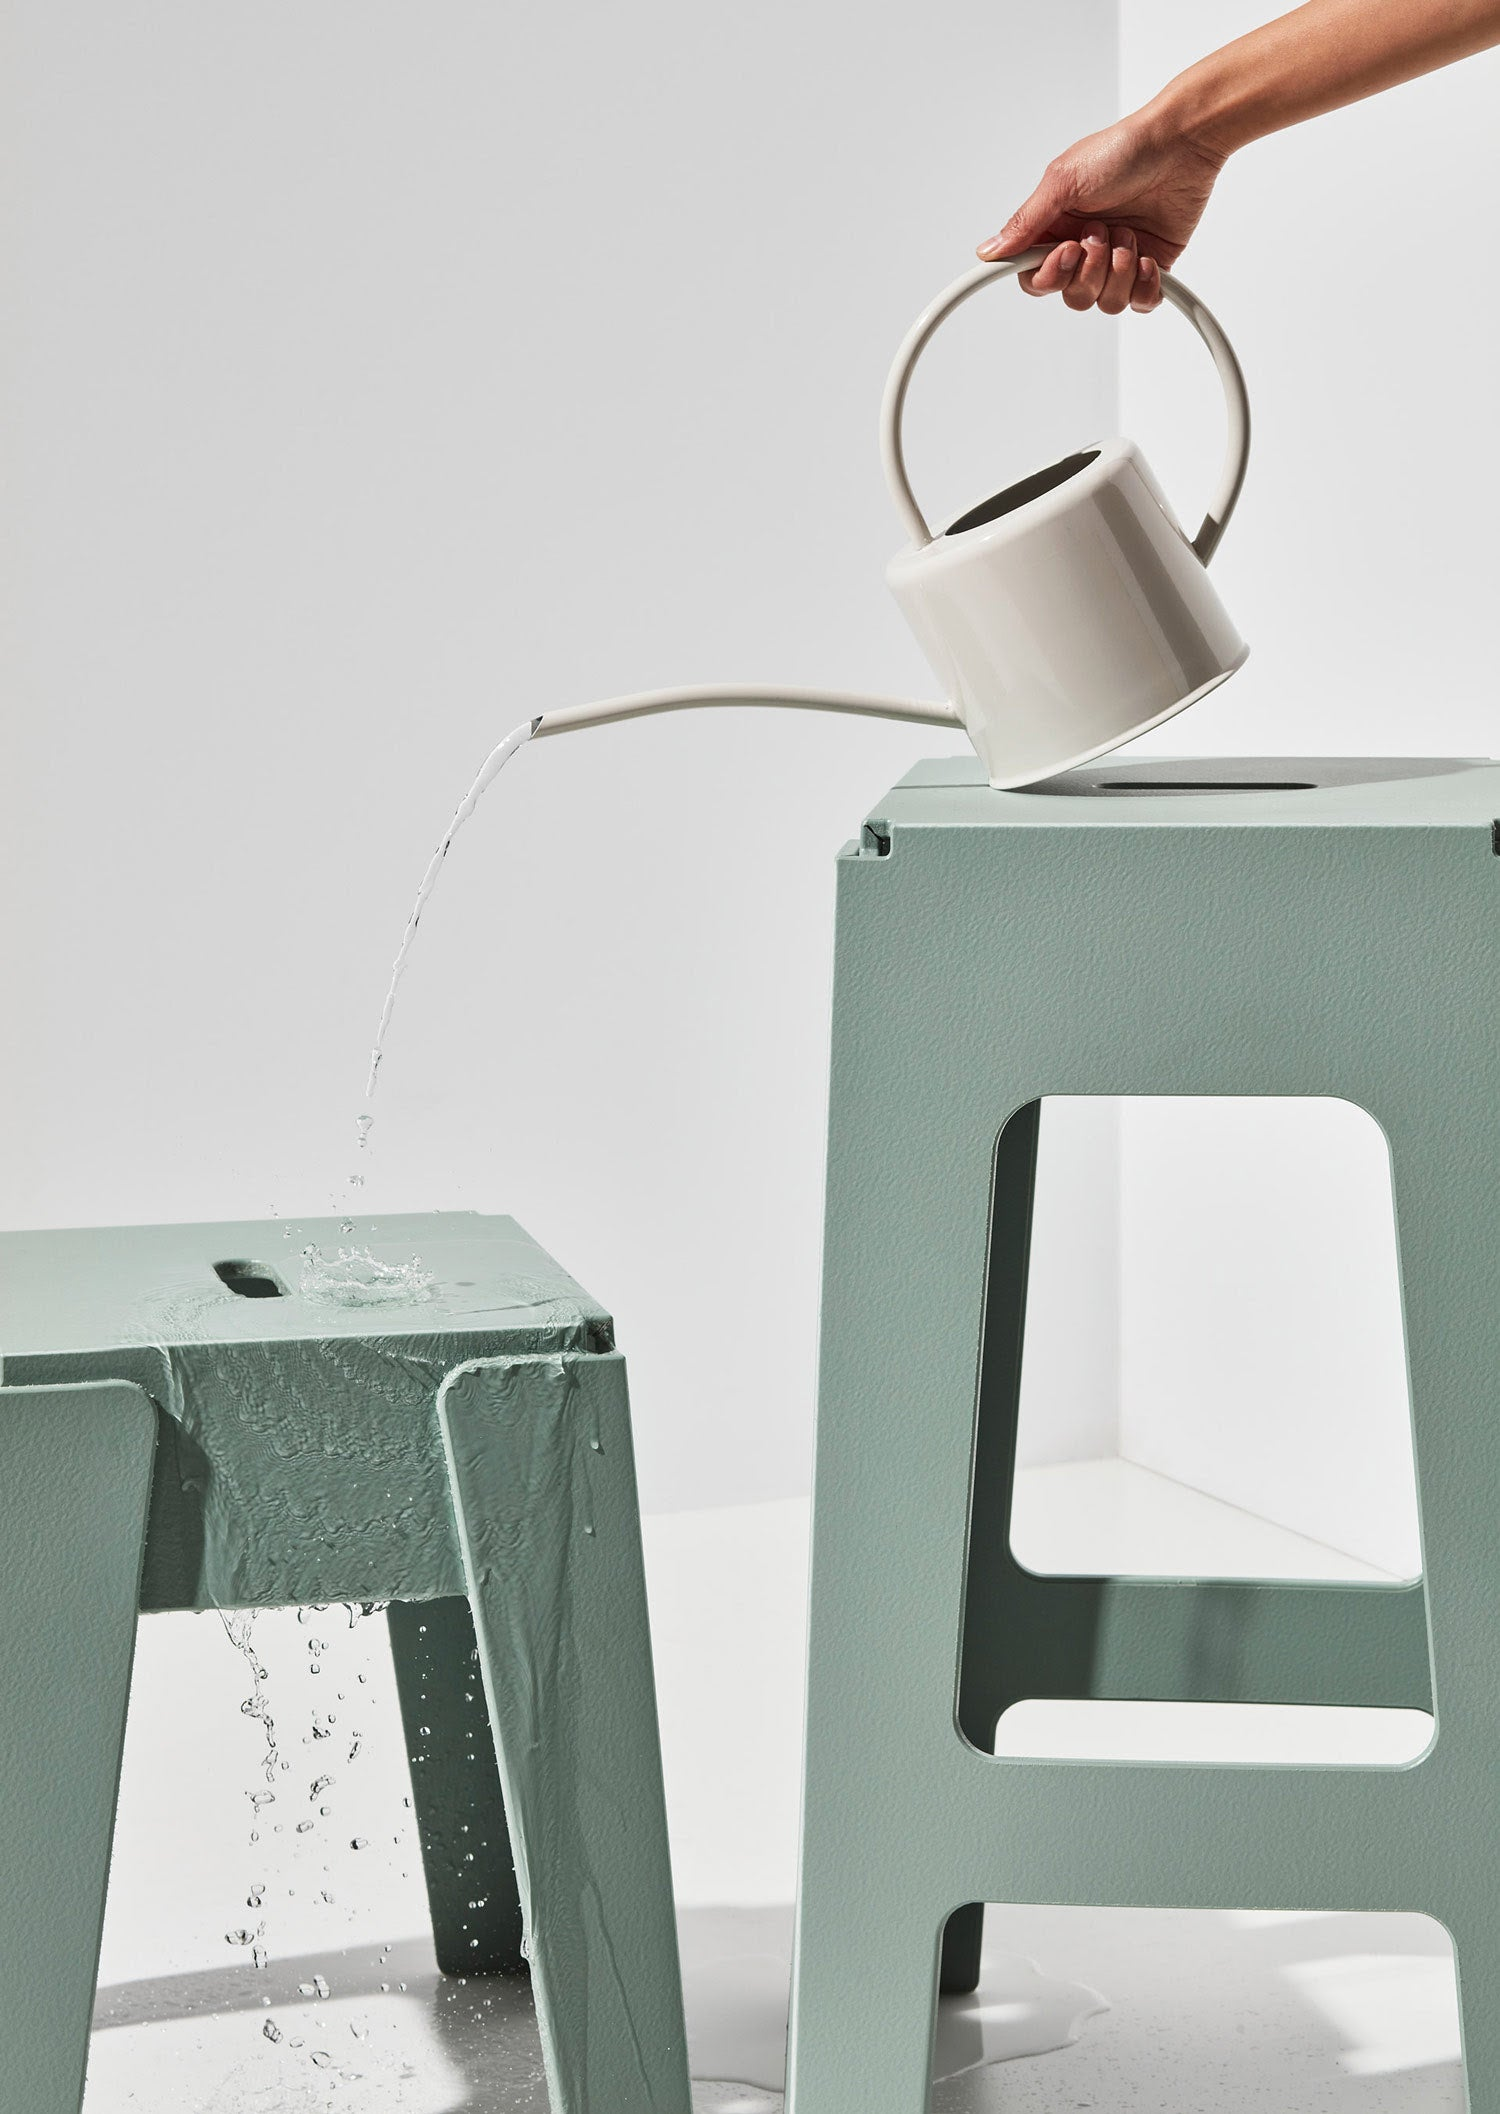 Sage Butter Stool and Bar Stool   Recycled Plastic Furniture   Indoor Outdoor Waterproof   Gibson Karlo   DesignByThem